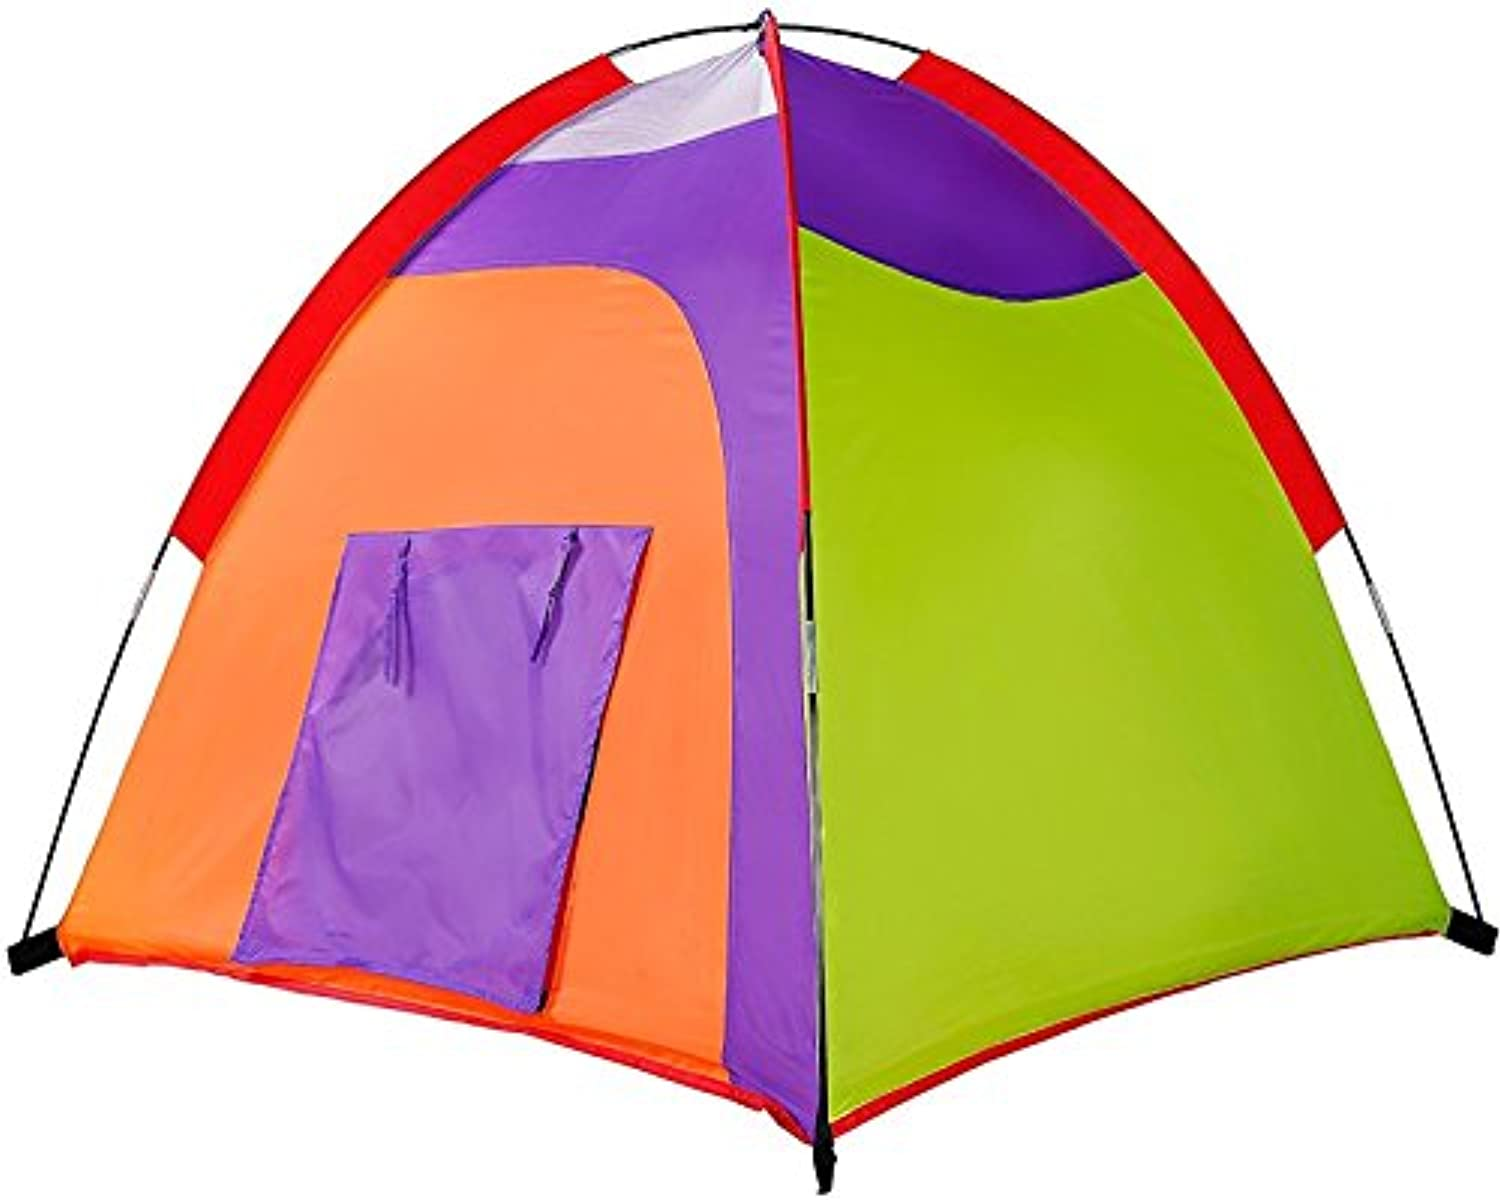 KidsテントColourful Curvy再生テントPop Up Tent Play TentsインドアアウトドアテントGreatゲーム& Toyギフトfor Children Fun by Alvantor